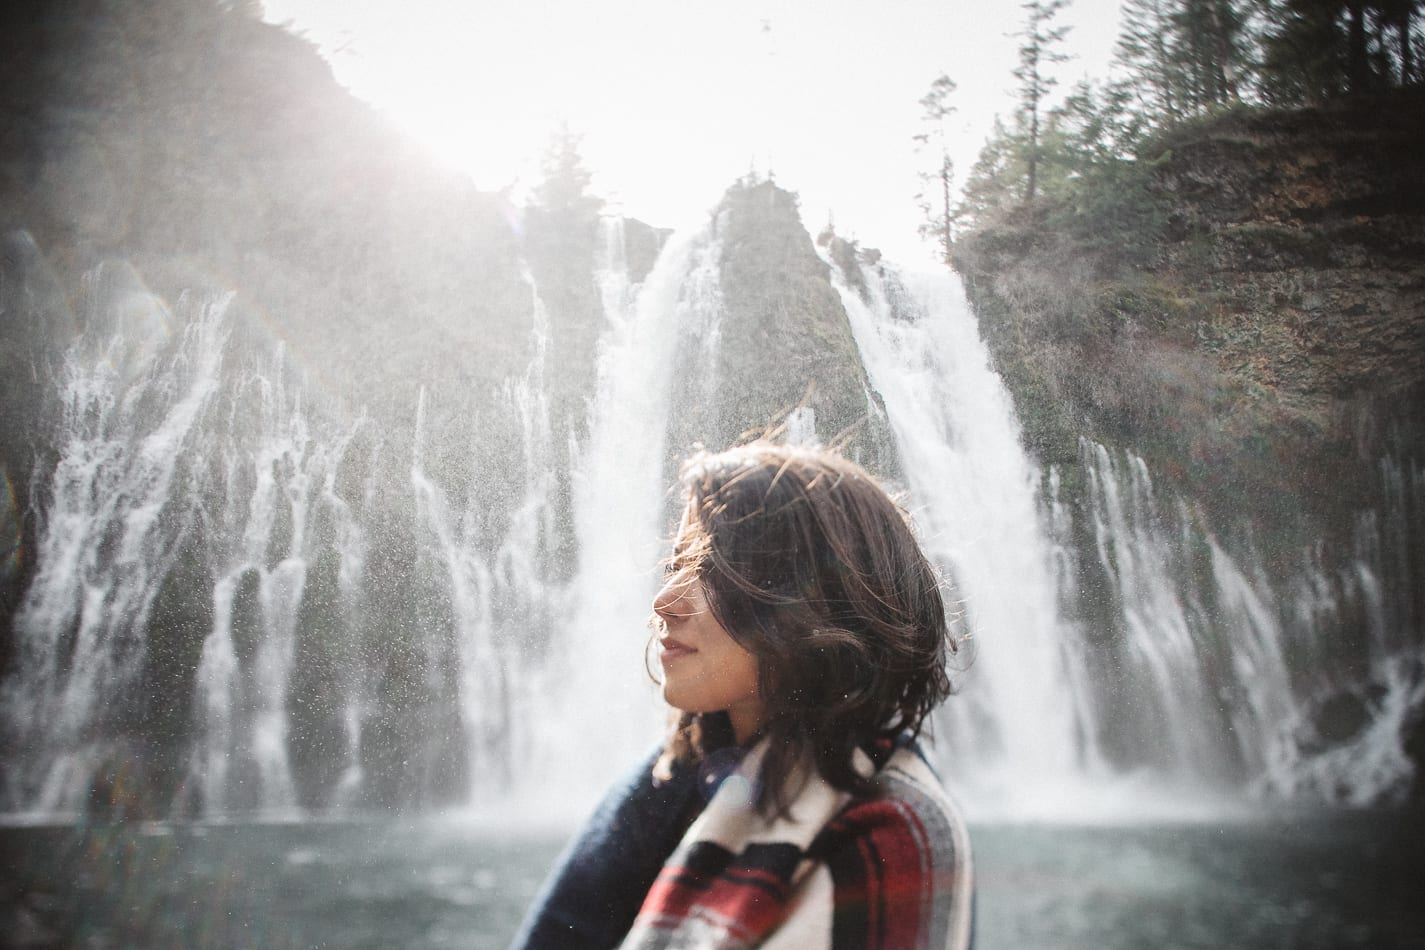 burney-falls-lifestyle-portrait-photographer-11